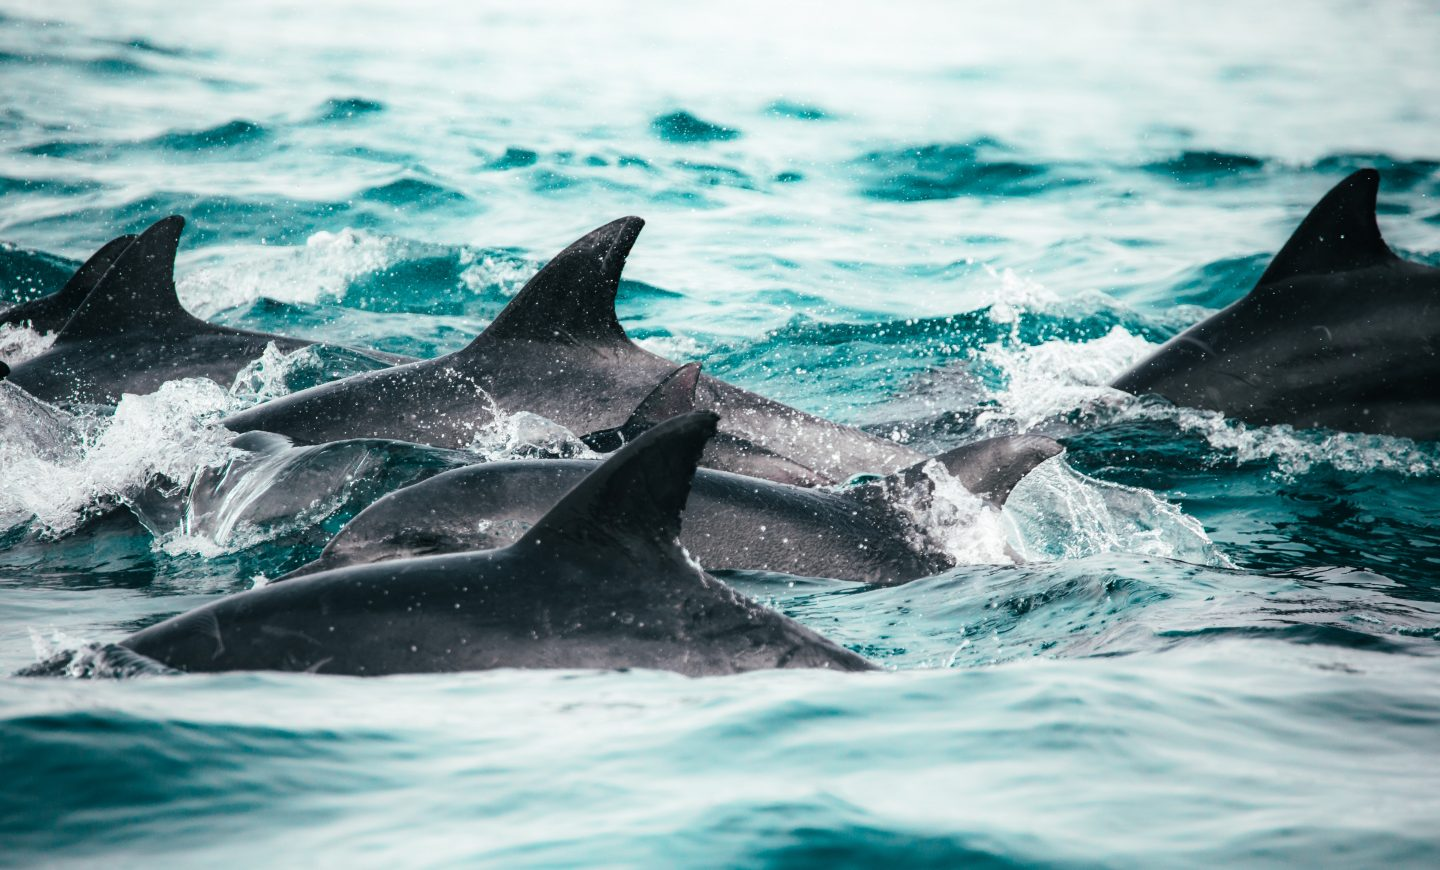 three dolphins in a group in the ocean, wild dolphins in the ocean